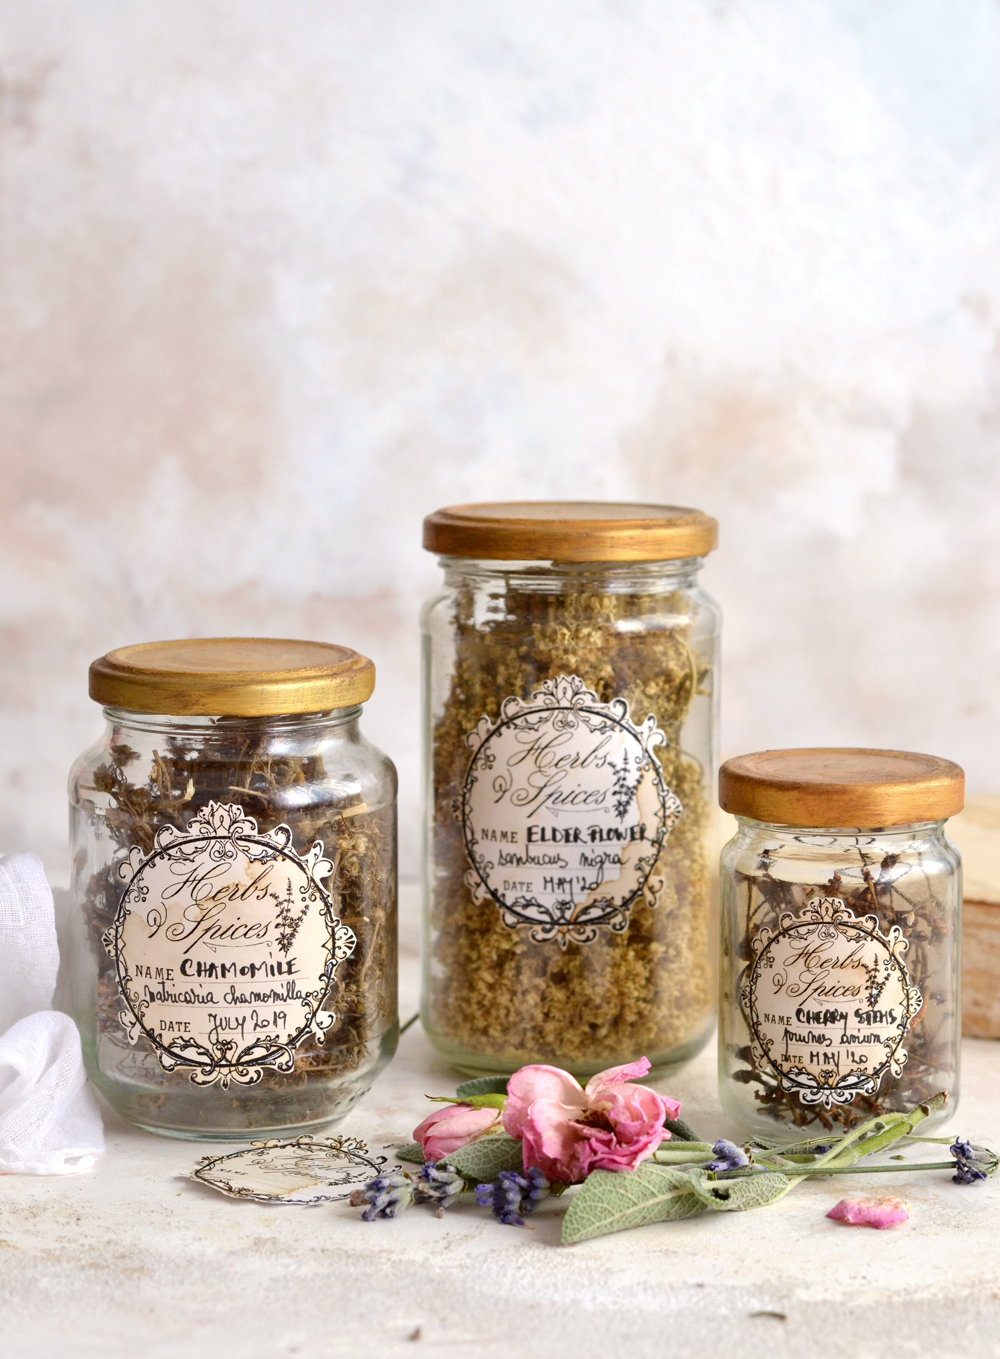 DIY Herbs and Spices Apothecary Jars - learn how to make these super chic vintage apothecary jars, the starting point in your own herbal apothecary adventure!